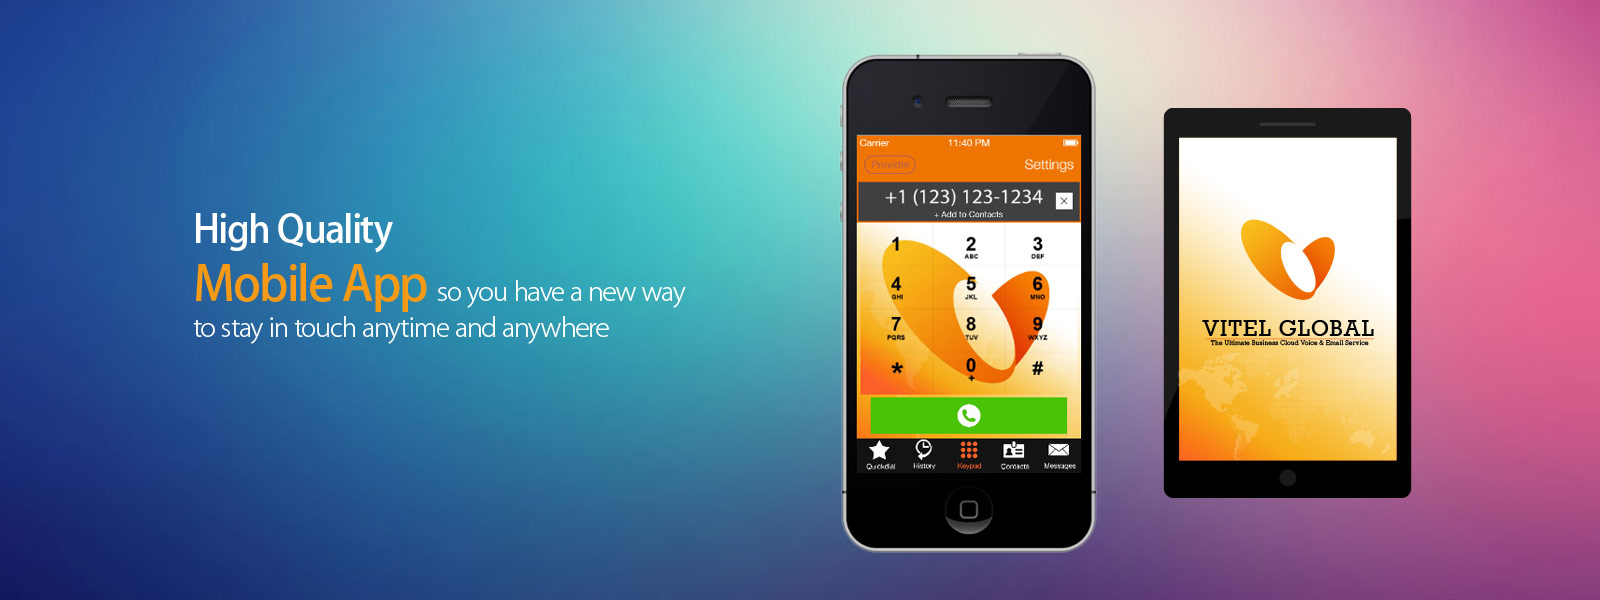 VoIP Business Communications App in New Jersey, US - Vitel Global